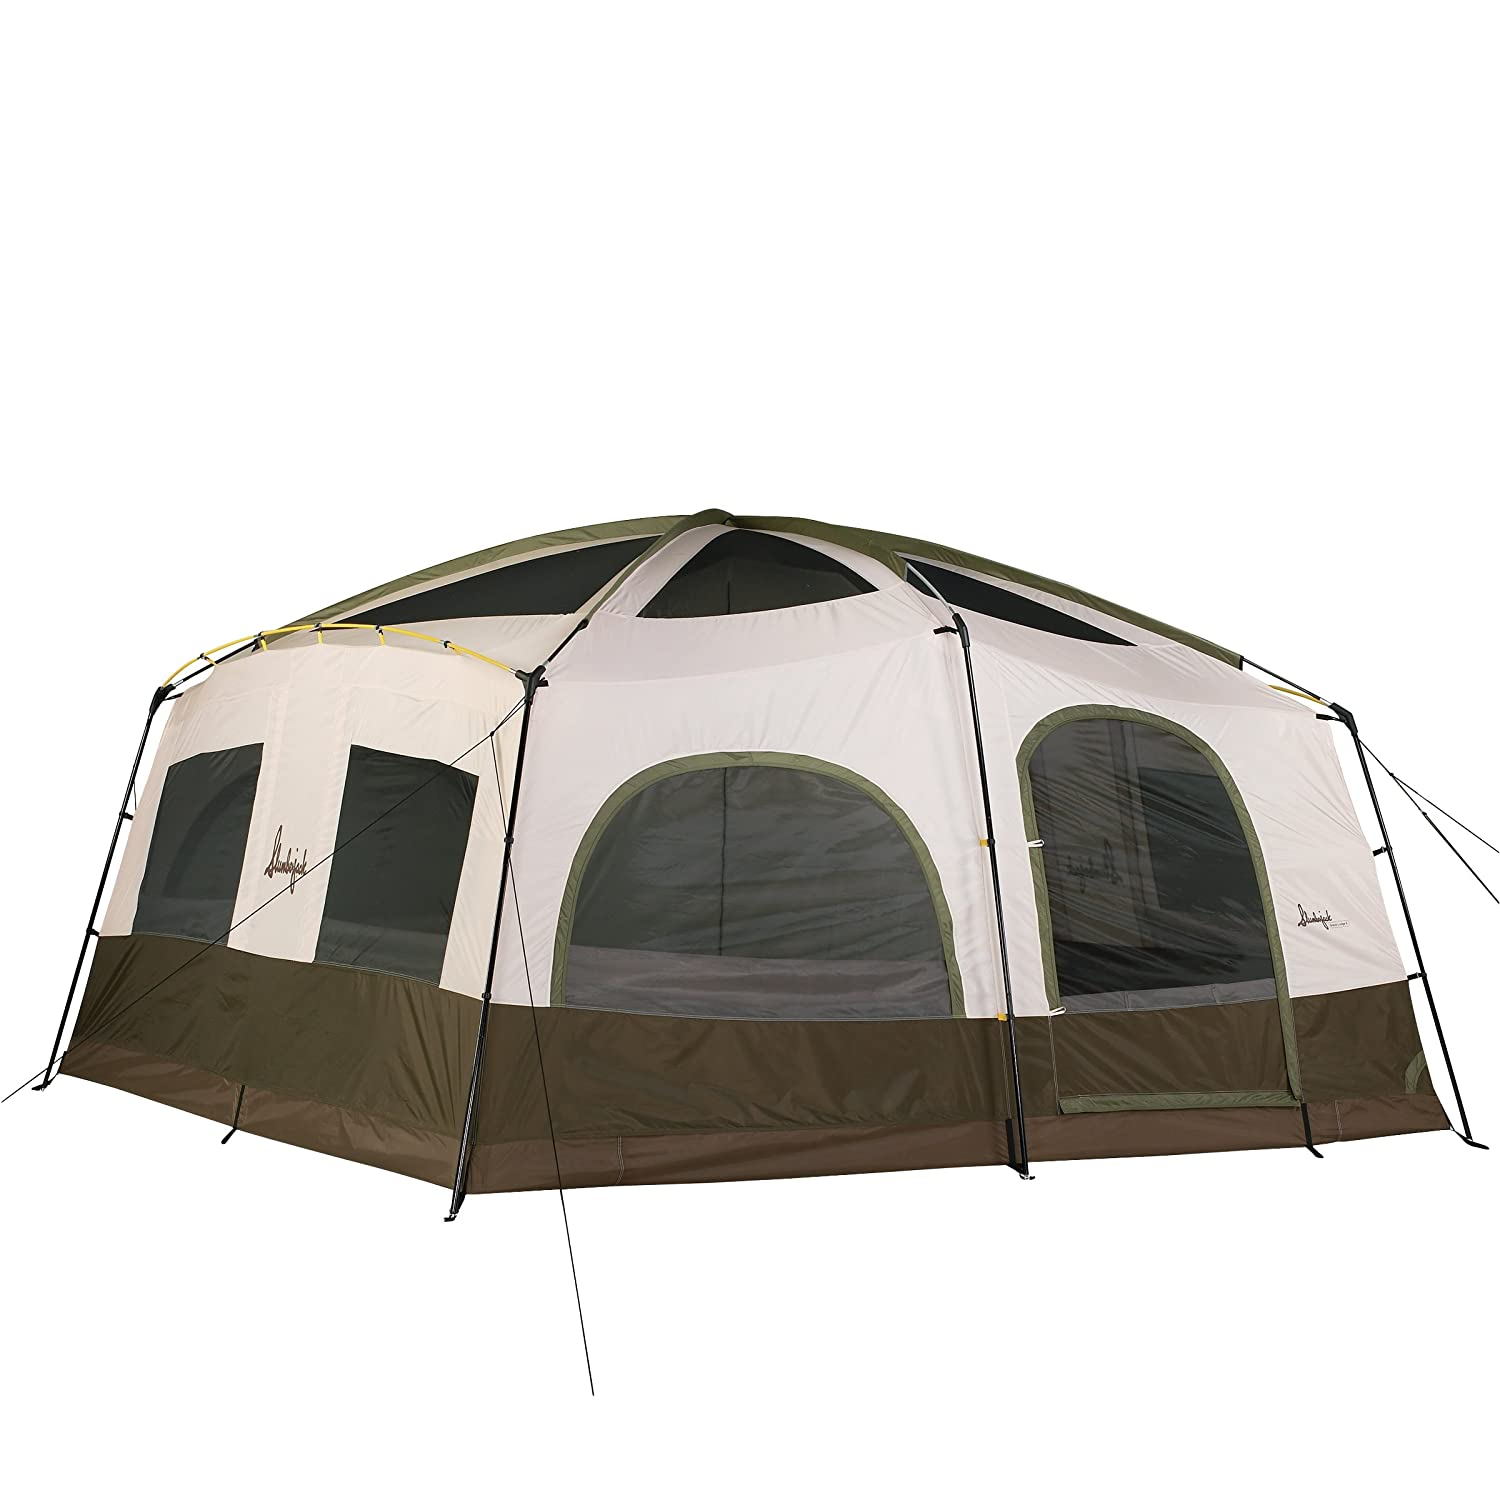 Amazon.com  Slumberjack Grand Lodge 12-Person Tent  Family Tents  Sports u0026 Outdoors  sc 1 st  Amazon.com & Amazon.com : Slumberjack Grand Lodge 12-Person Tent : Family Tents ...